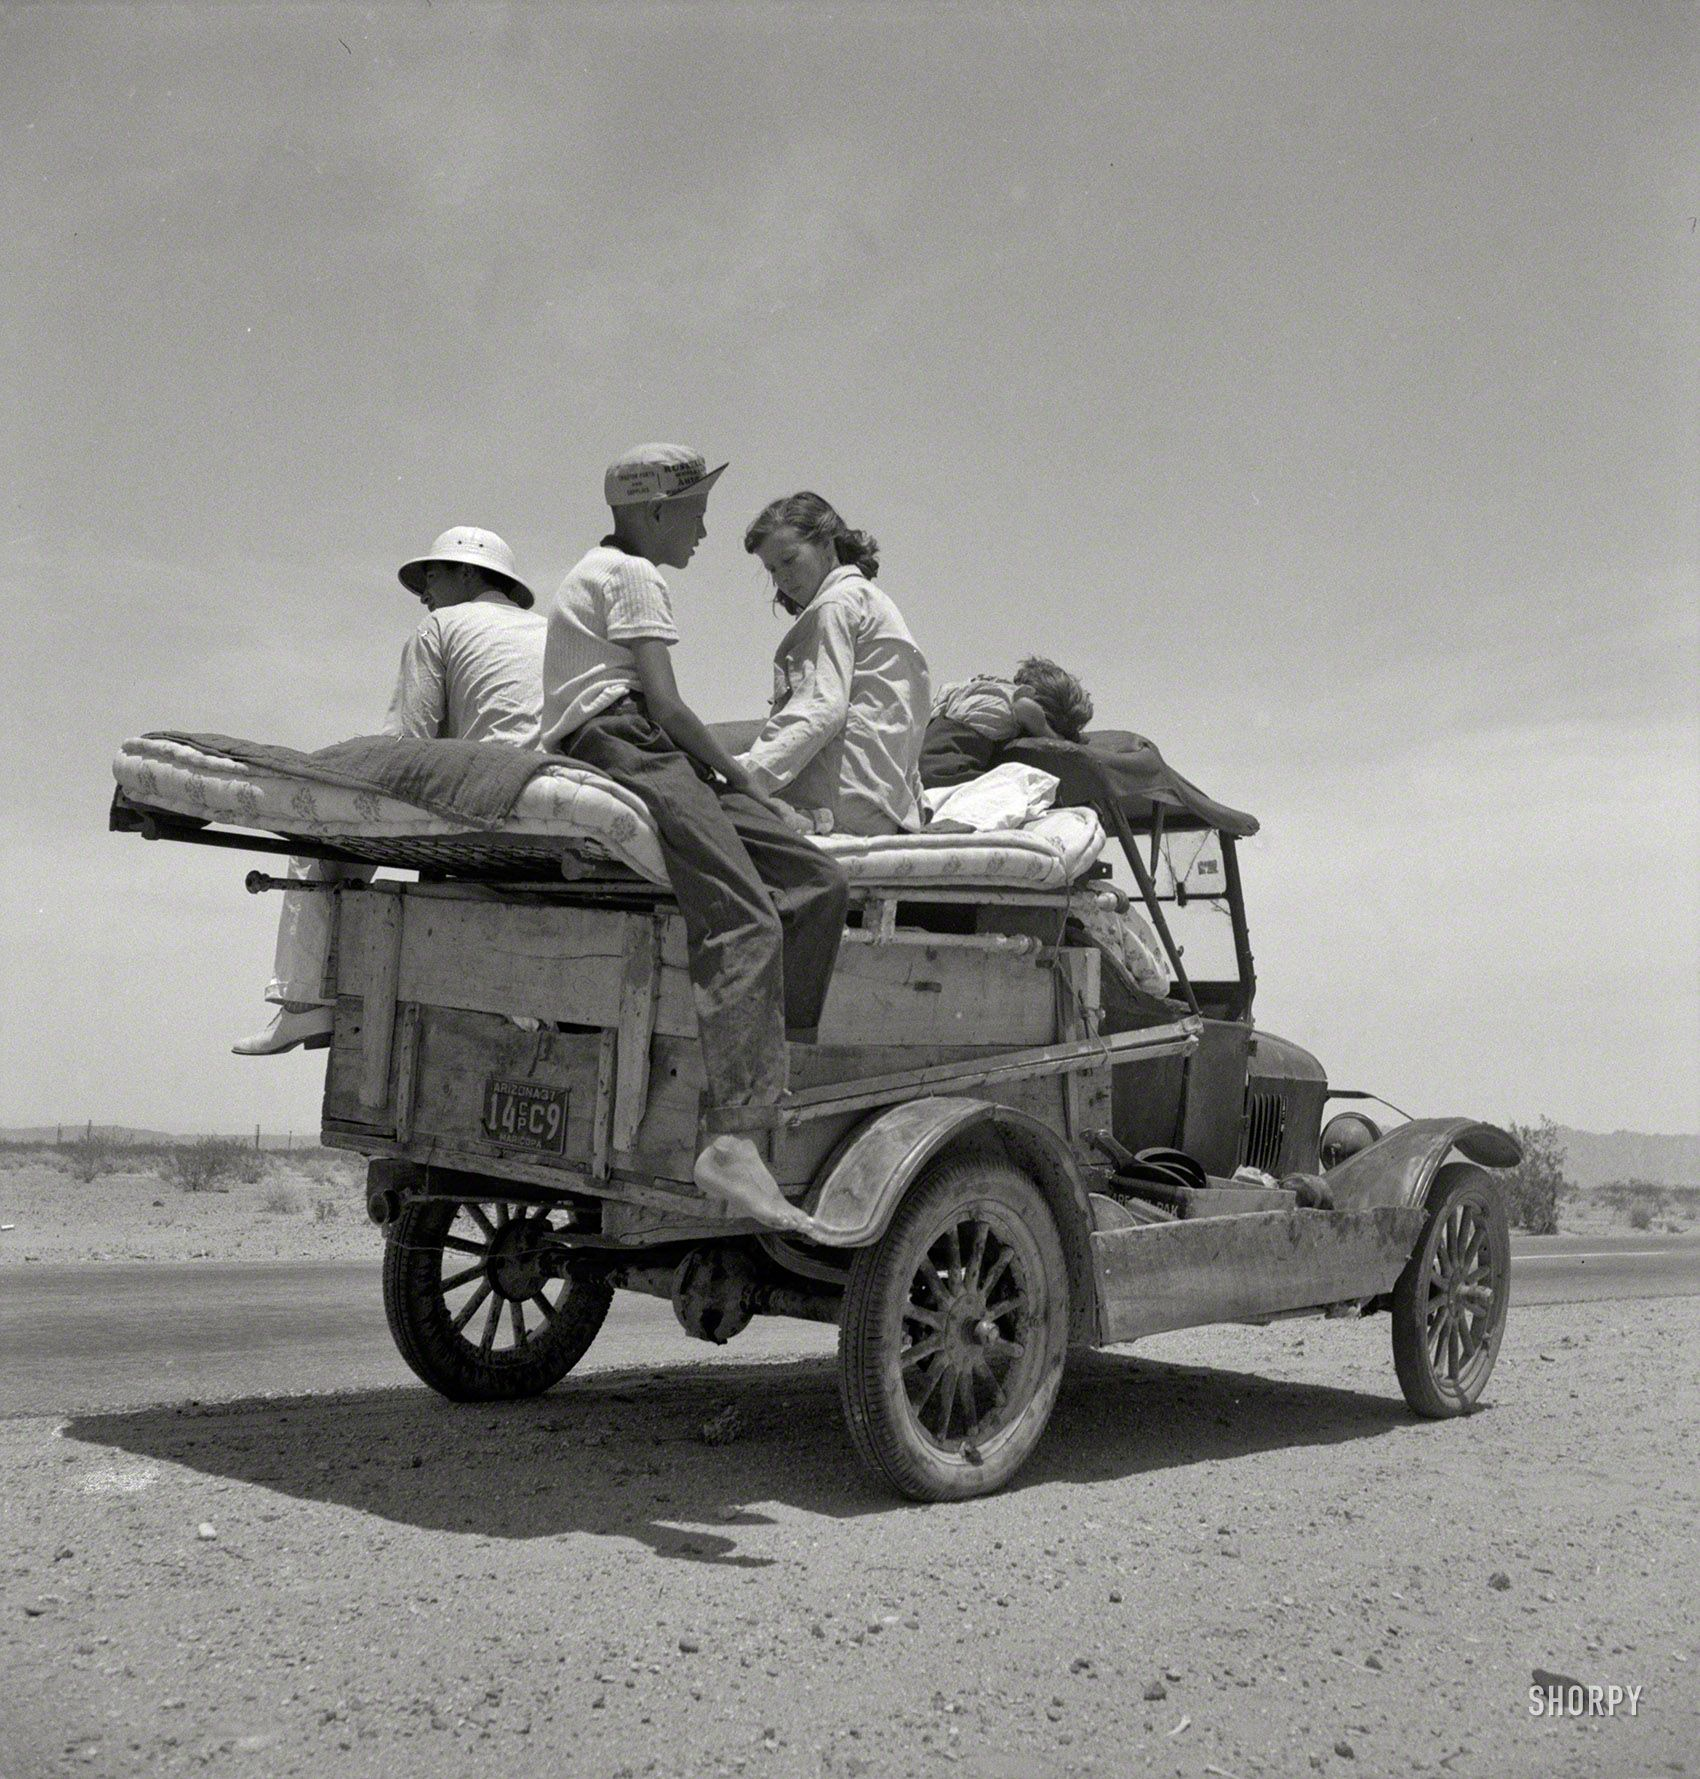 May 1937. Migratory Family Traveling Across The Desert In